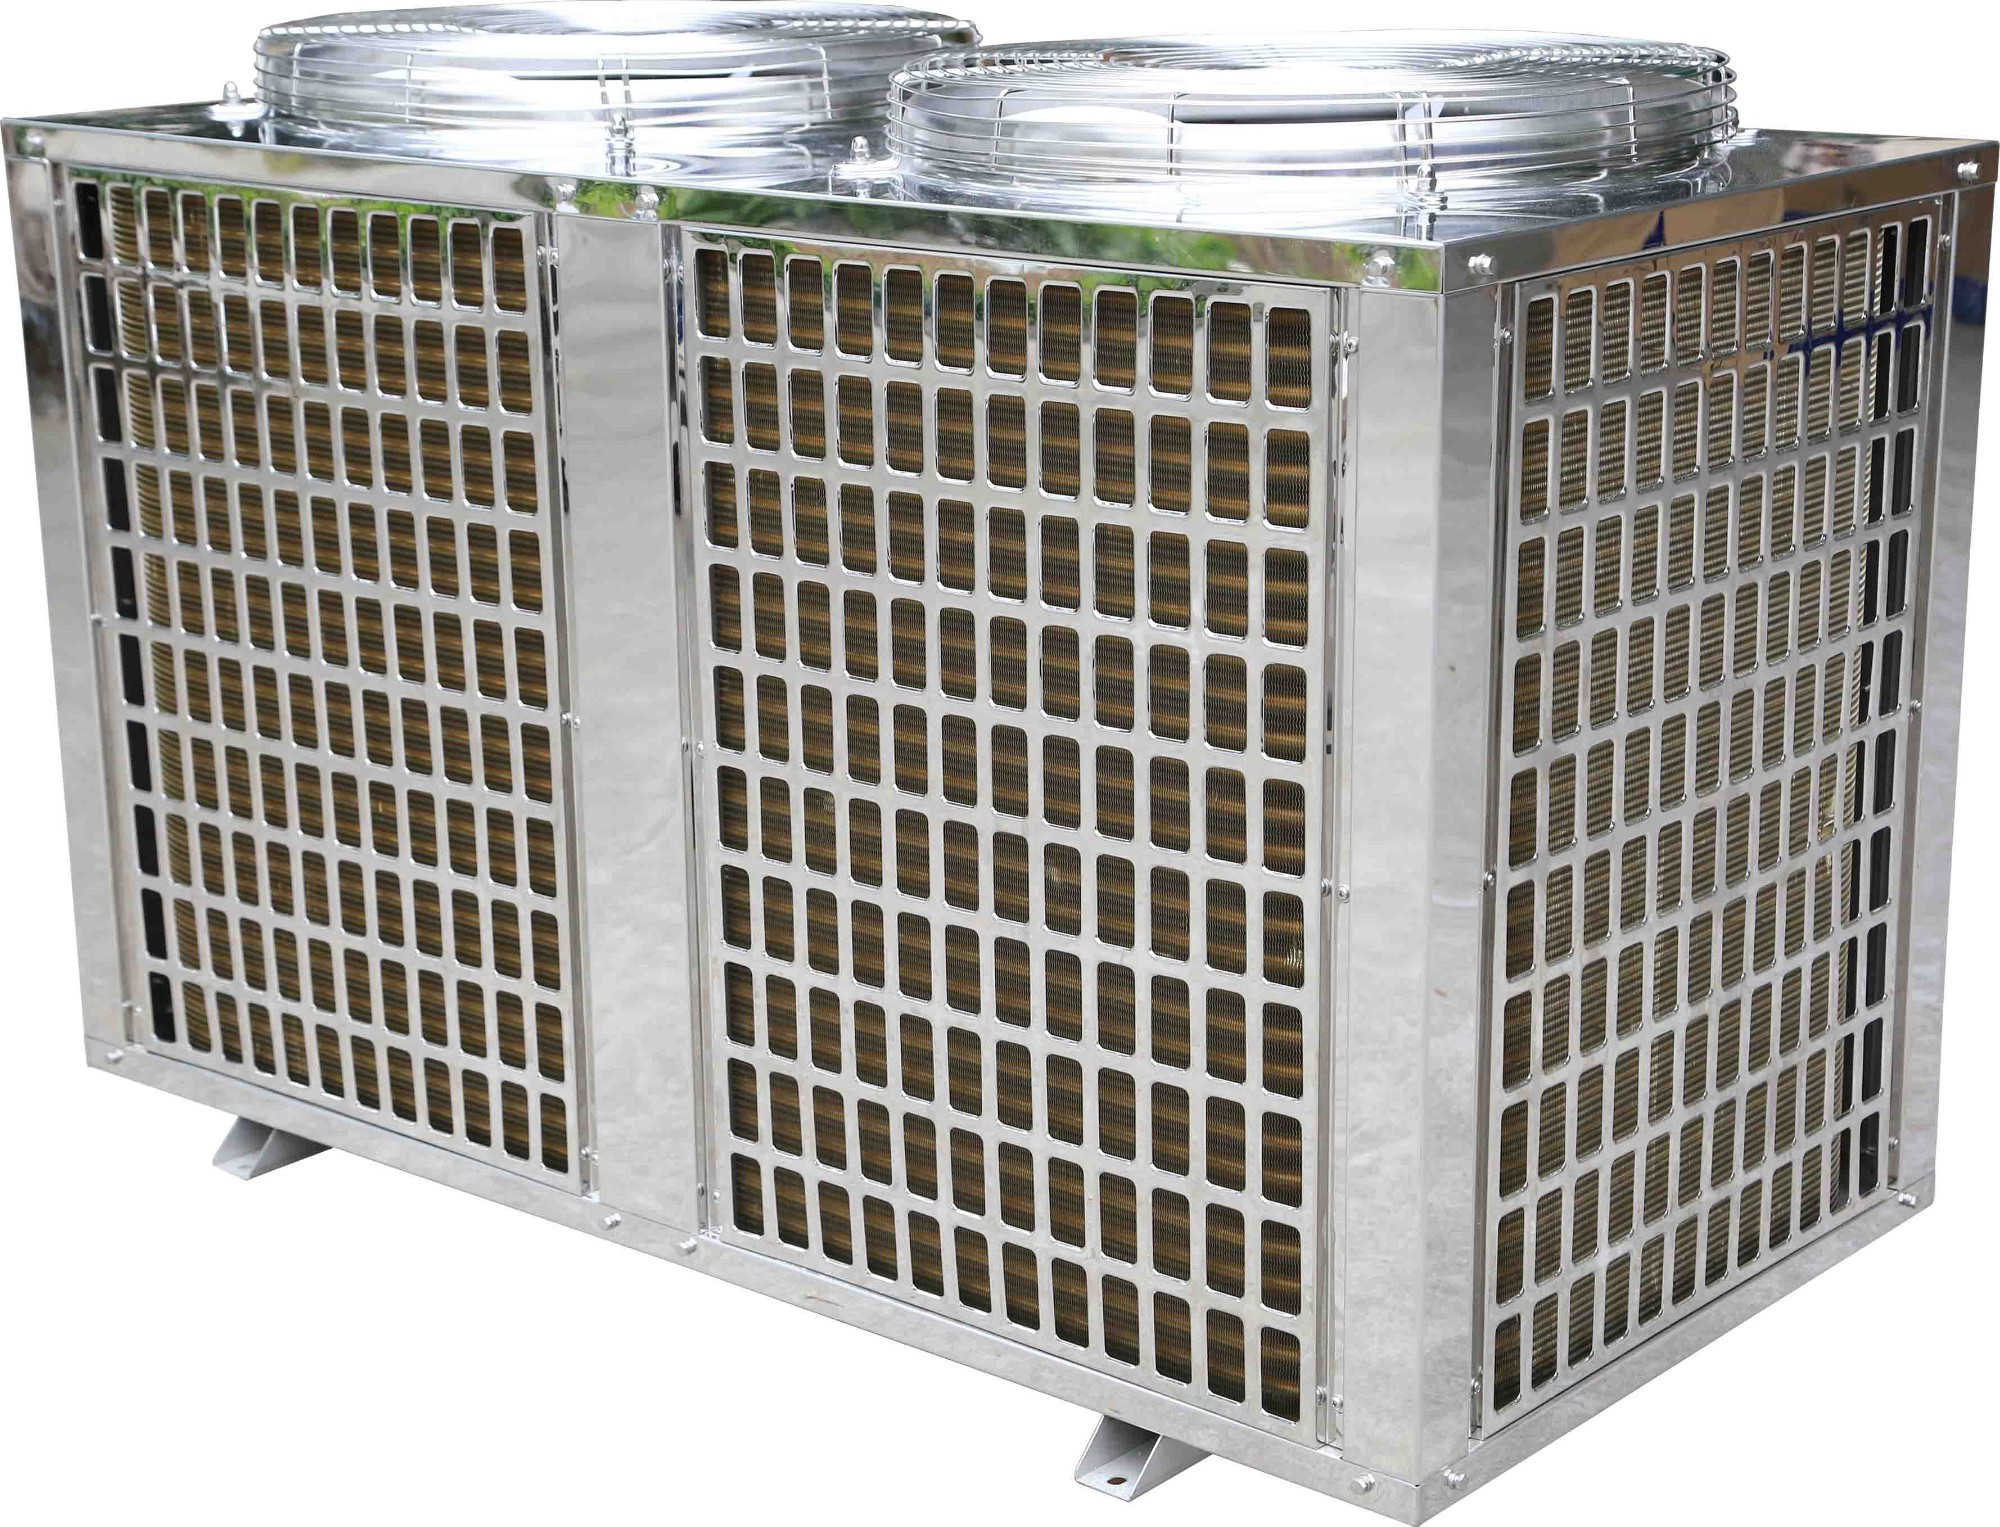 High quality energy saving techology  Heat Pumps For Low Temp Area Quotes,China heat pump equipment Heat Pumps For Low Temp Area Factory, pump equipmentHeat Pumps For Low Temp Area Purchasing